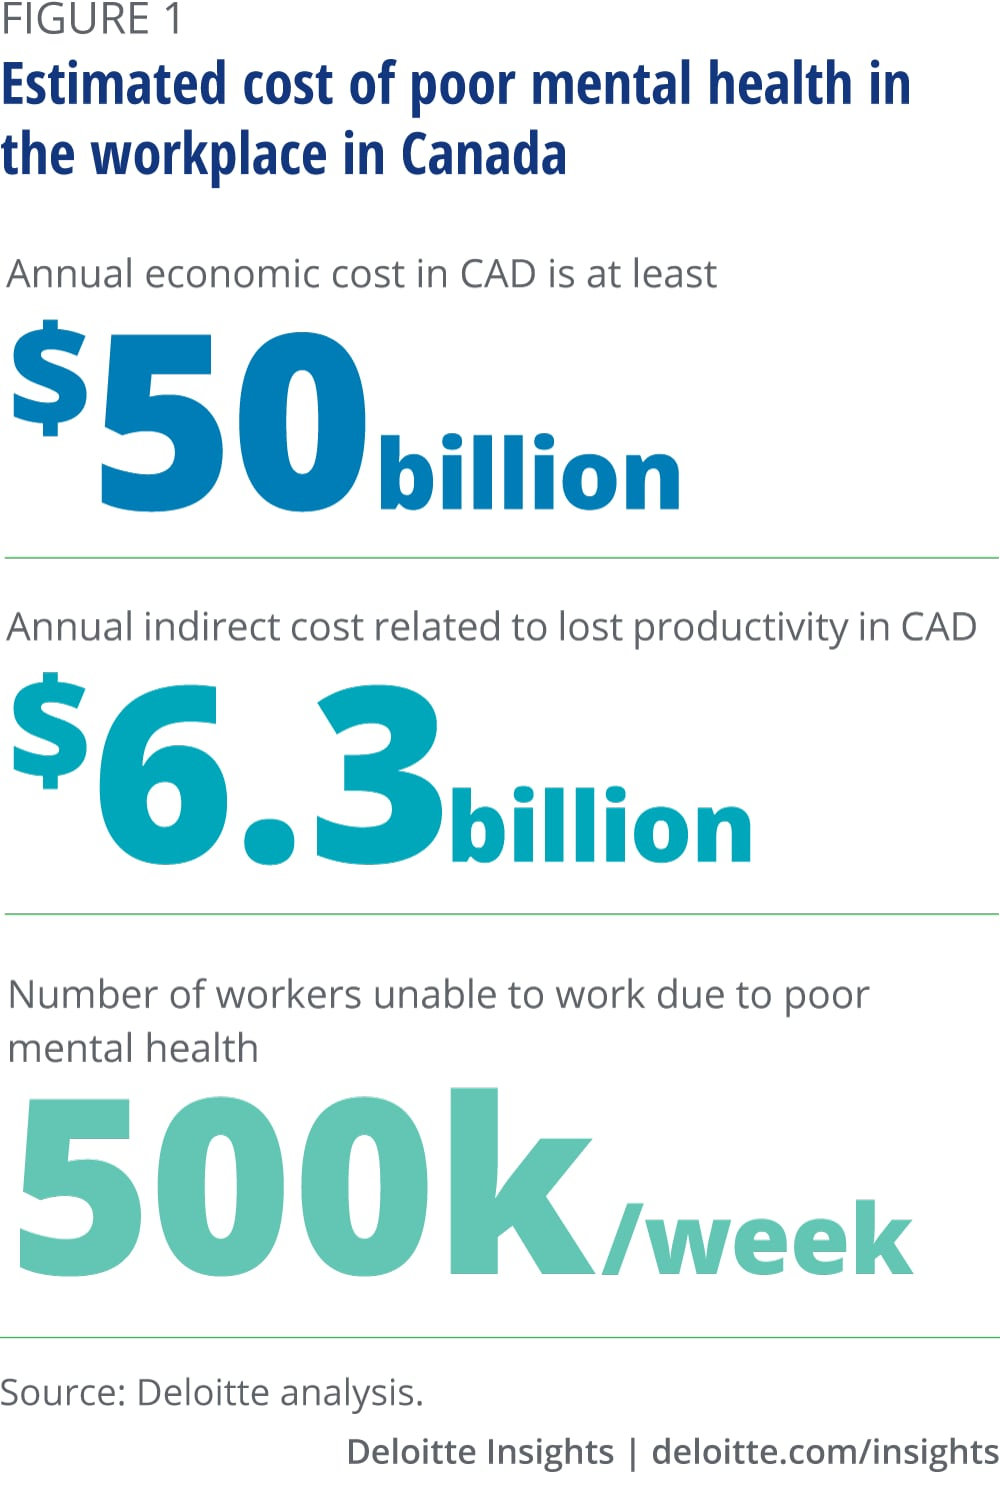 Estimated cost of poor mental health in the workplace in Canada